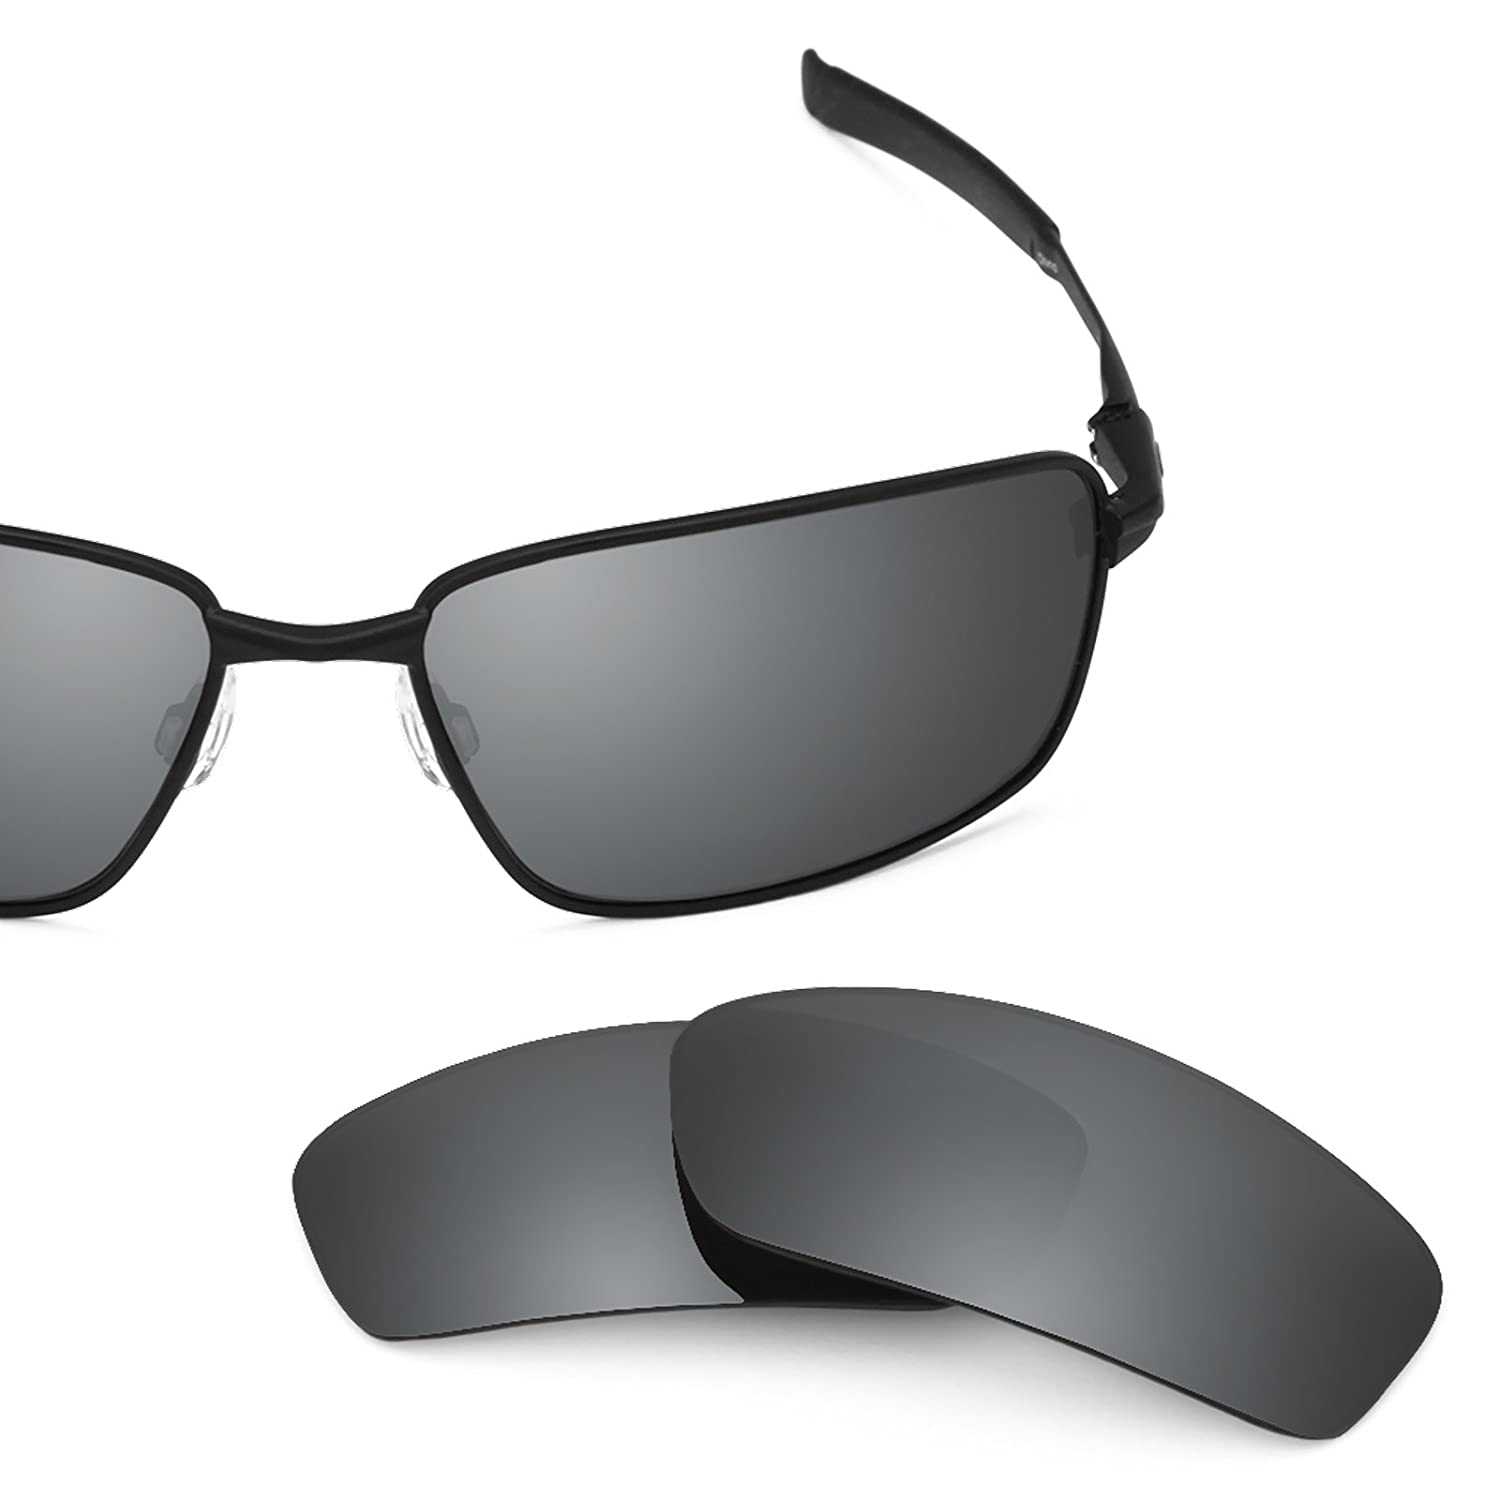 84f5f954473 Amazon.com  Revant Polarized Replacement Lenses for Oakley Splinter Black  Chrome MirrorShield  Sports   Outdoors